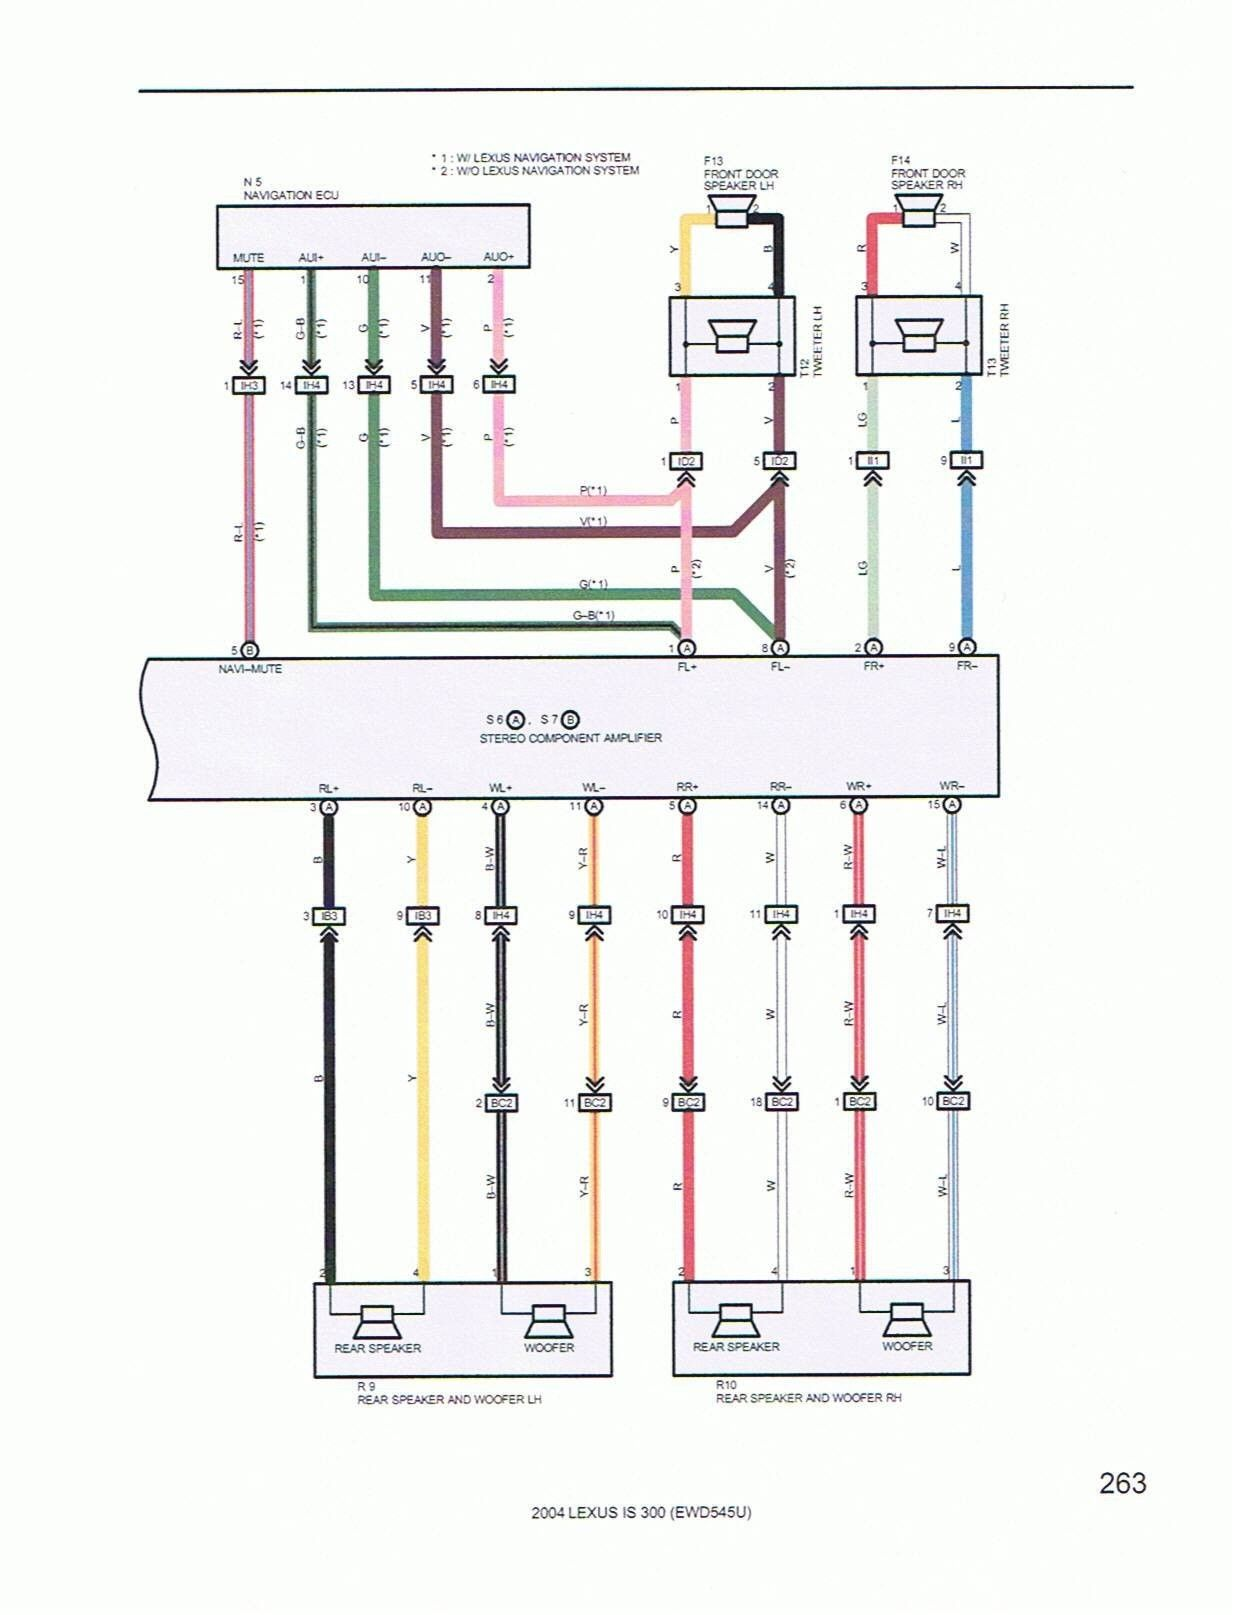 1999 Dodge Intrepid Stereo Wiring Diagrams